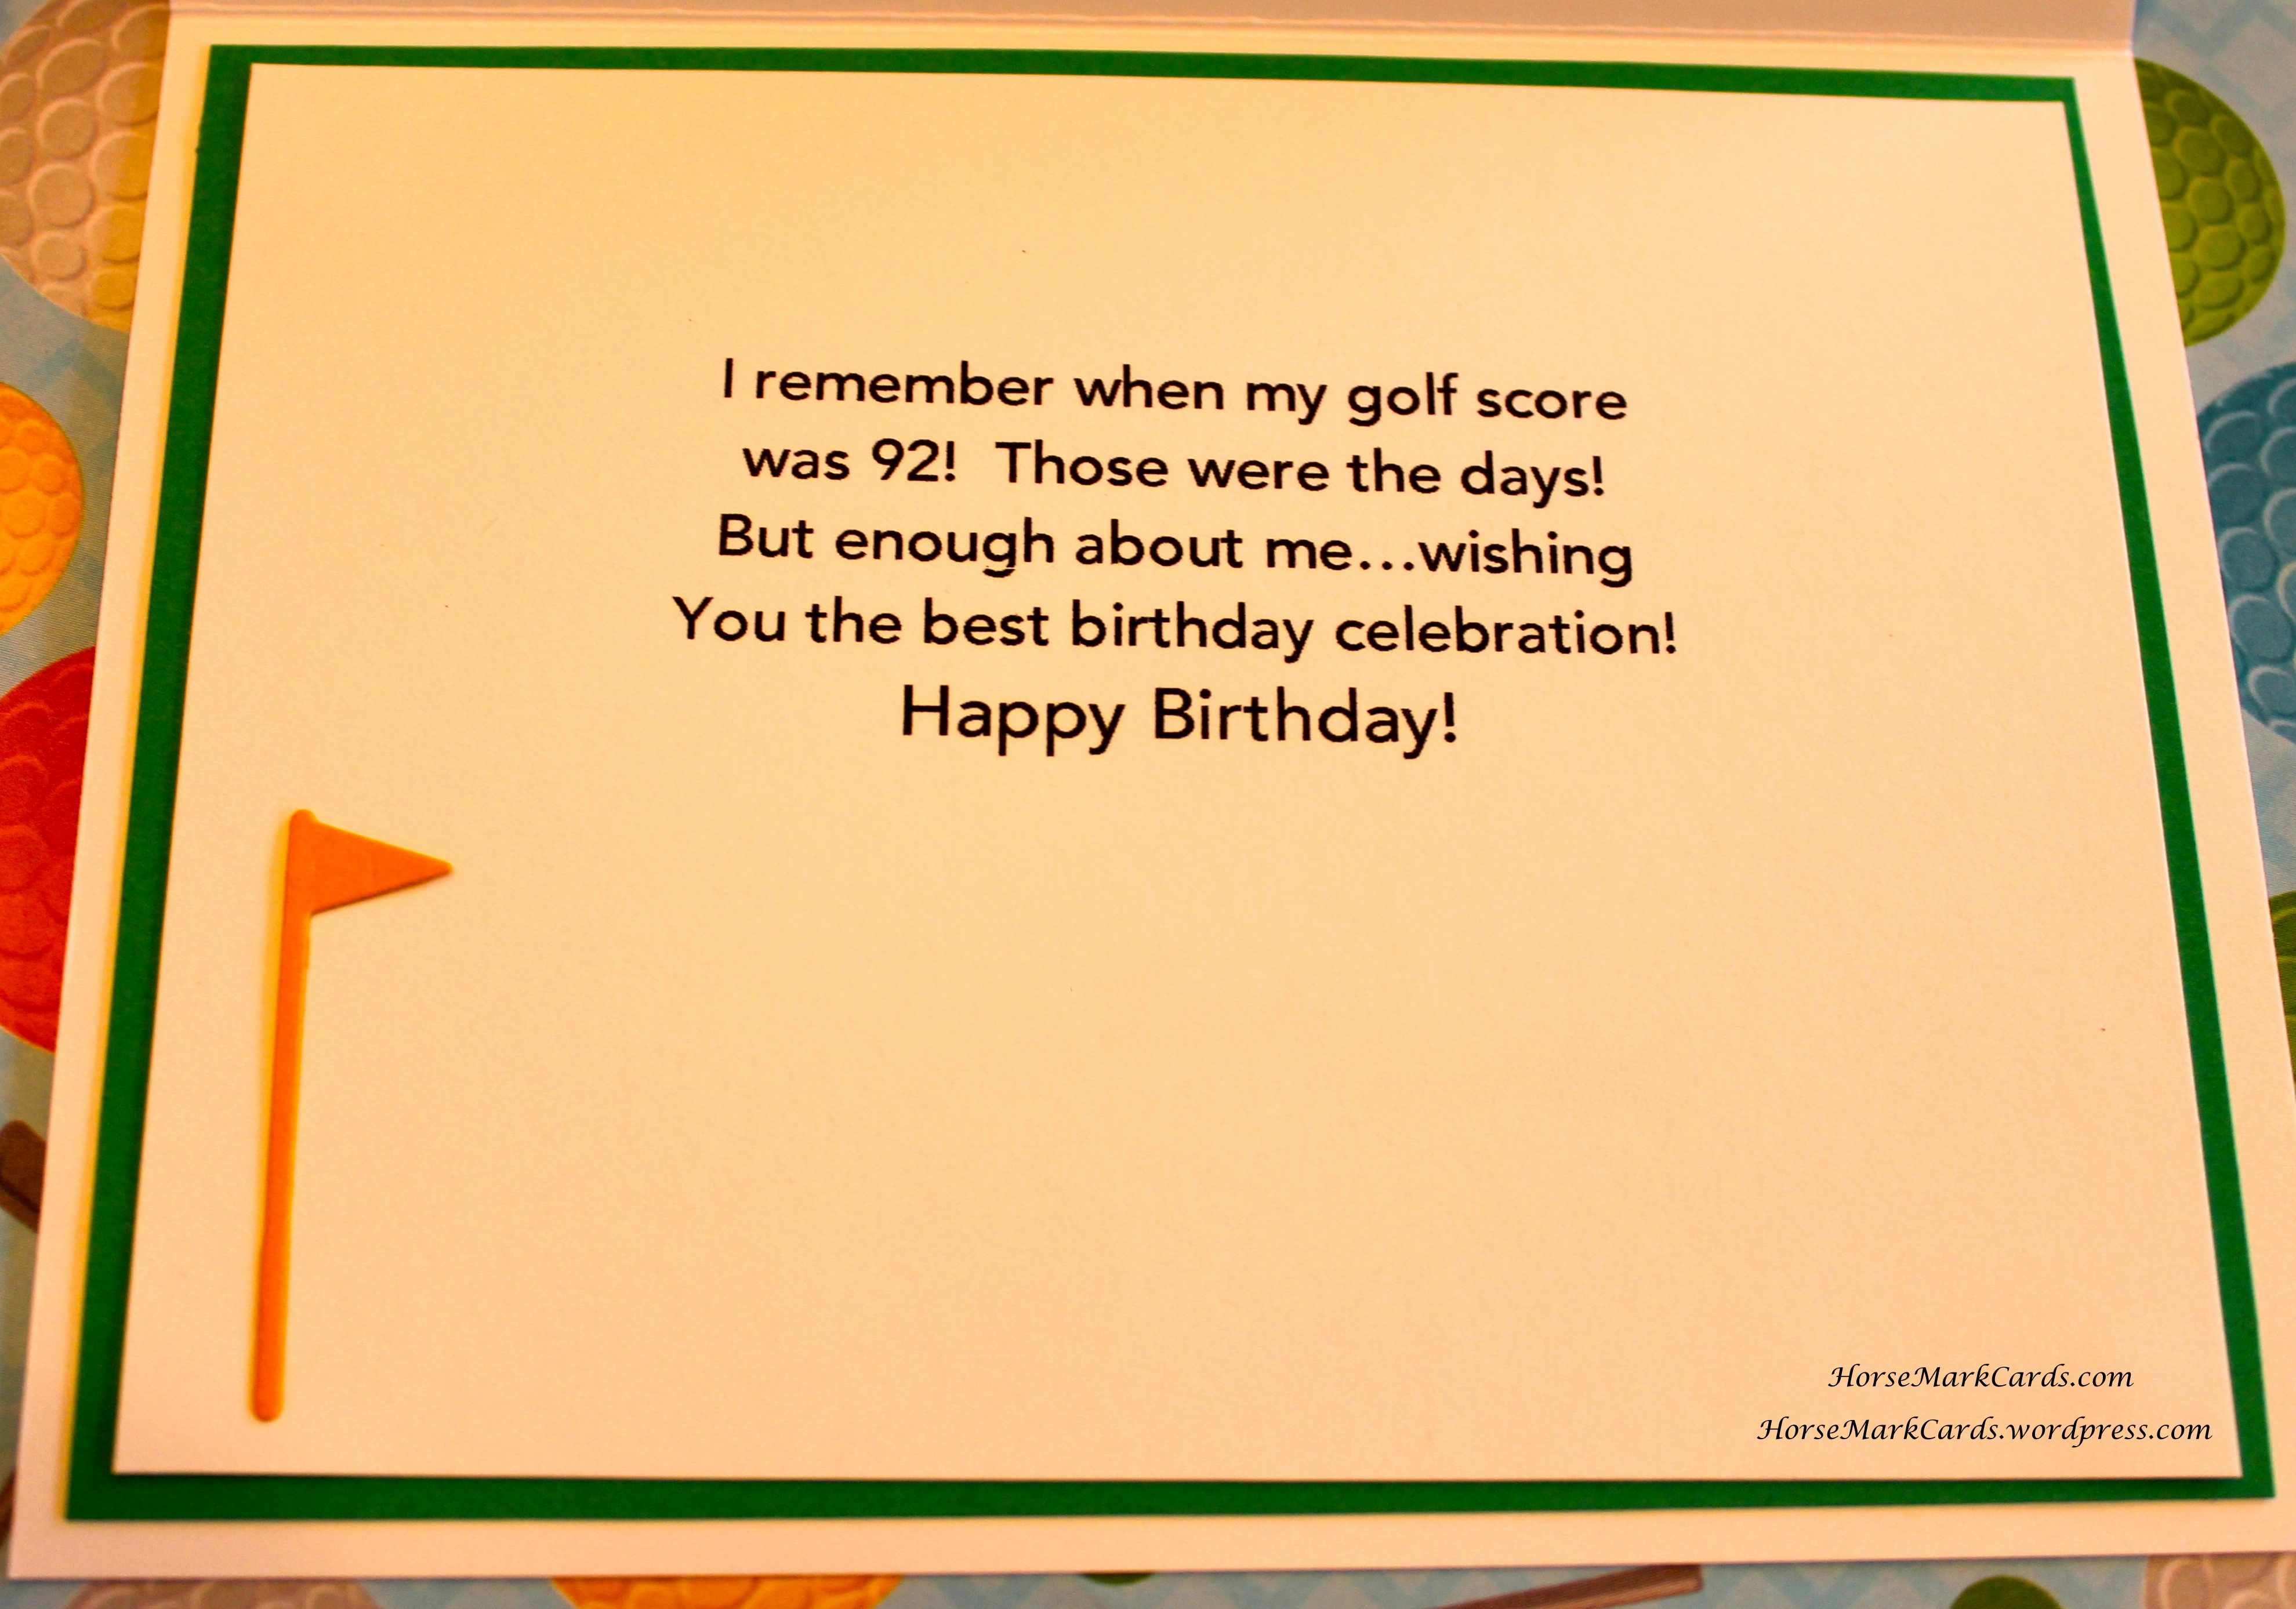 funny birthday card messages ; birthday-card-messages-for-friends-fresh-funny-birthday-card-message-gangcraft-of-birthday-card-messages-for-friends